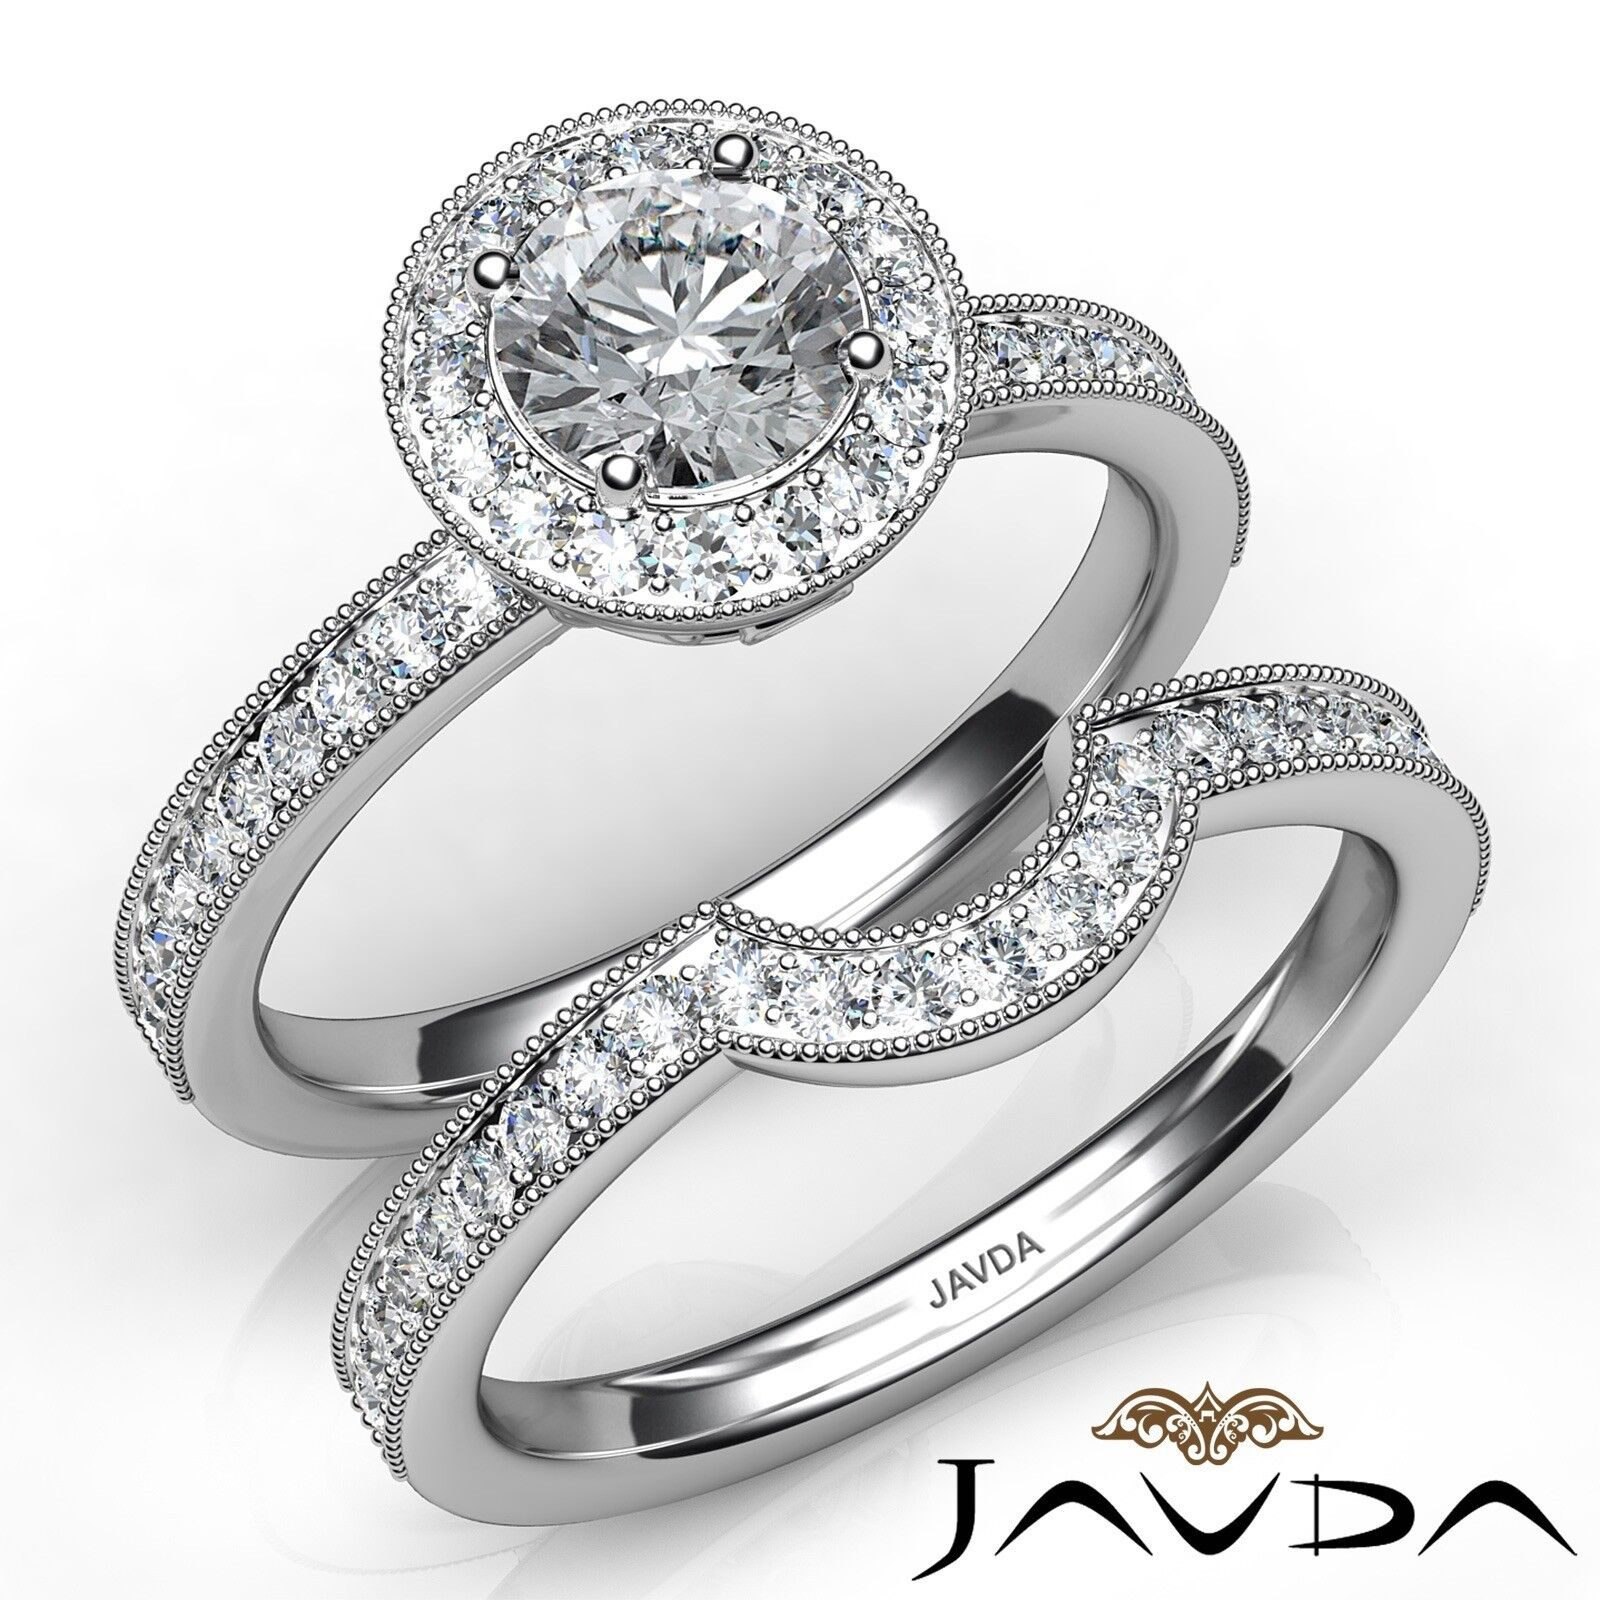 1.57ctw Halo Pave Milgrain Bridal Round Diamond Engagement Ring GIA F-VS2 Gold